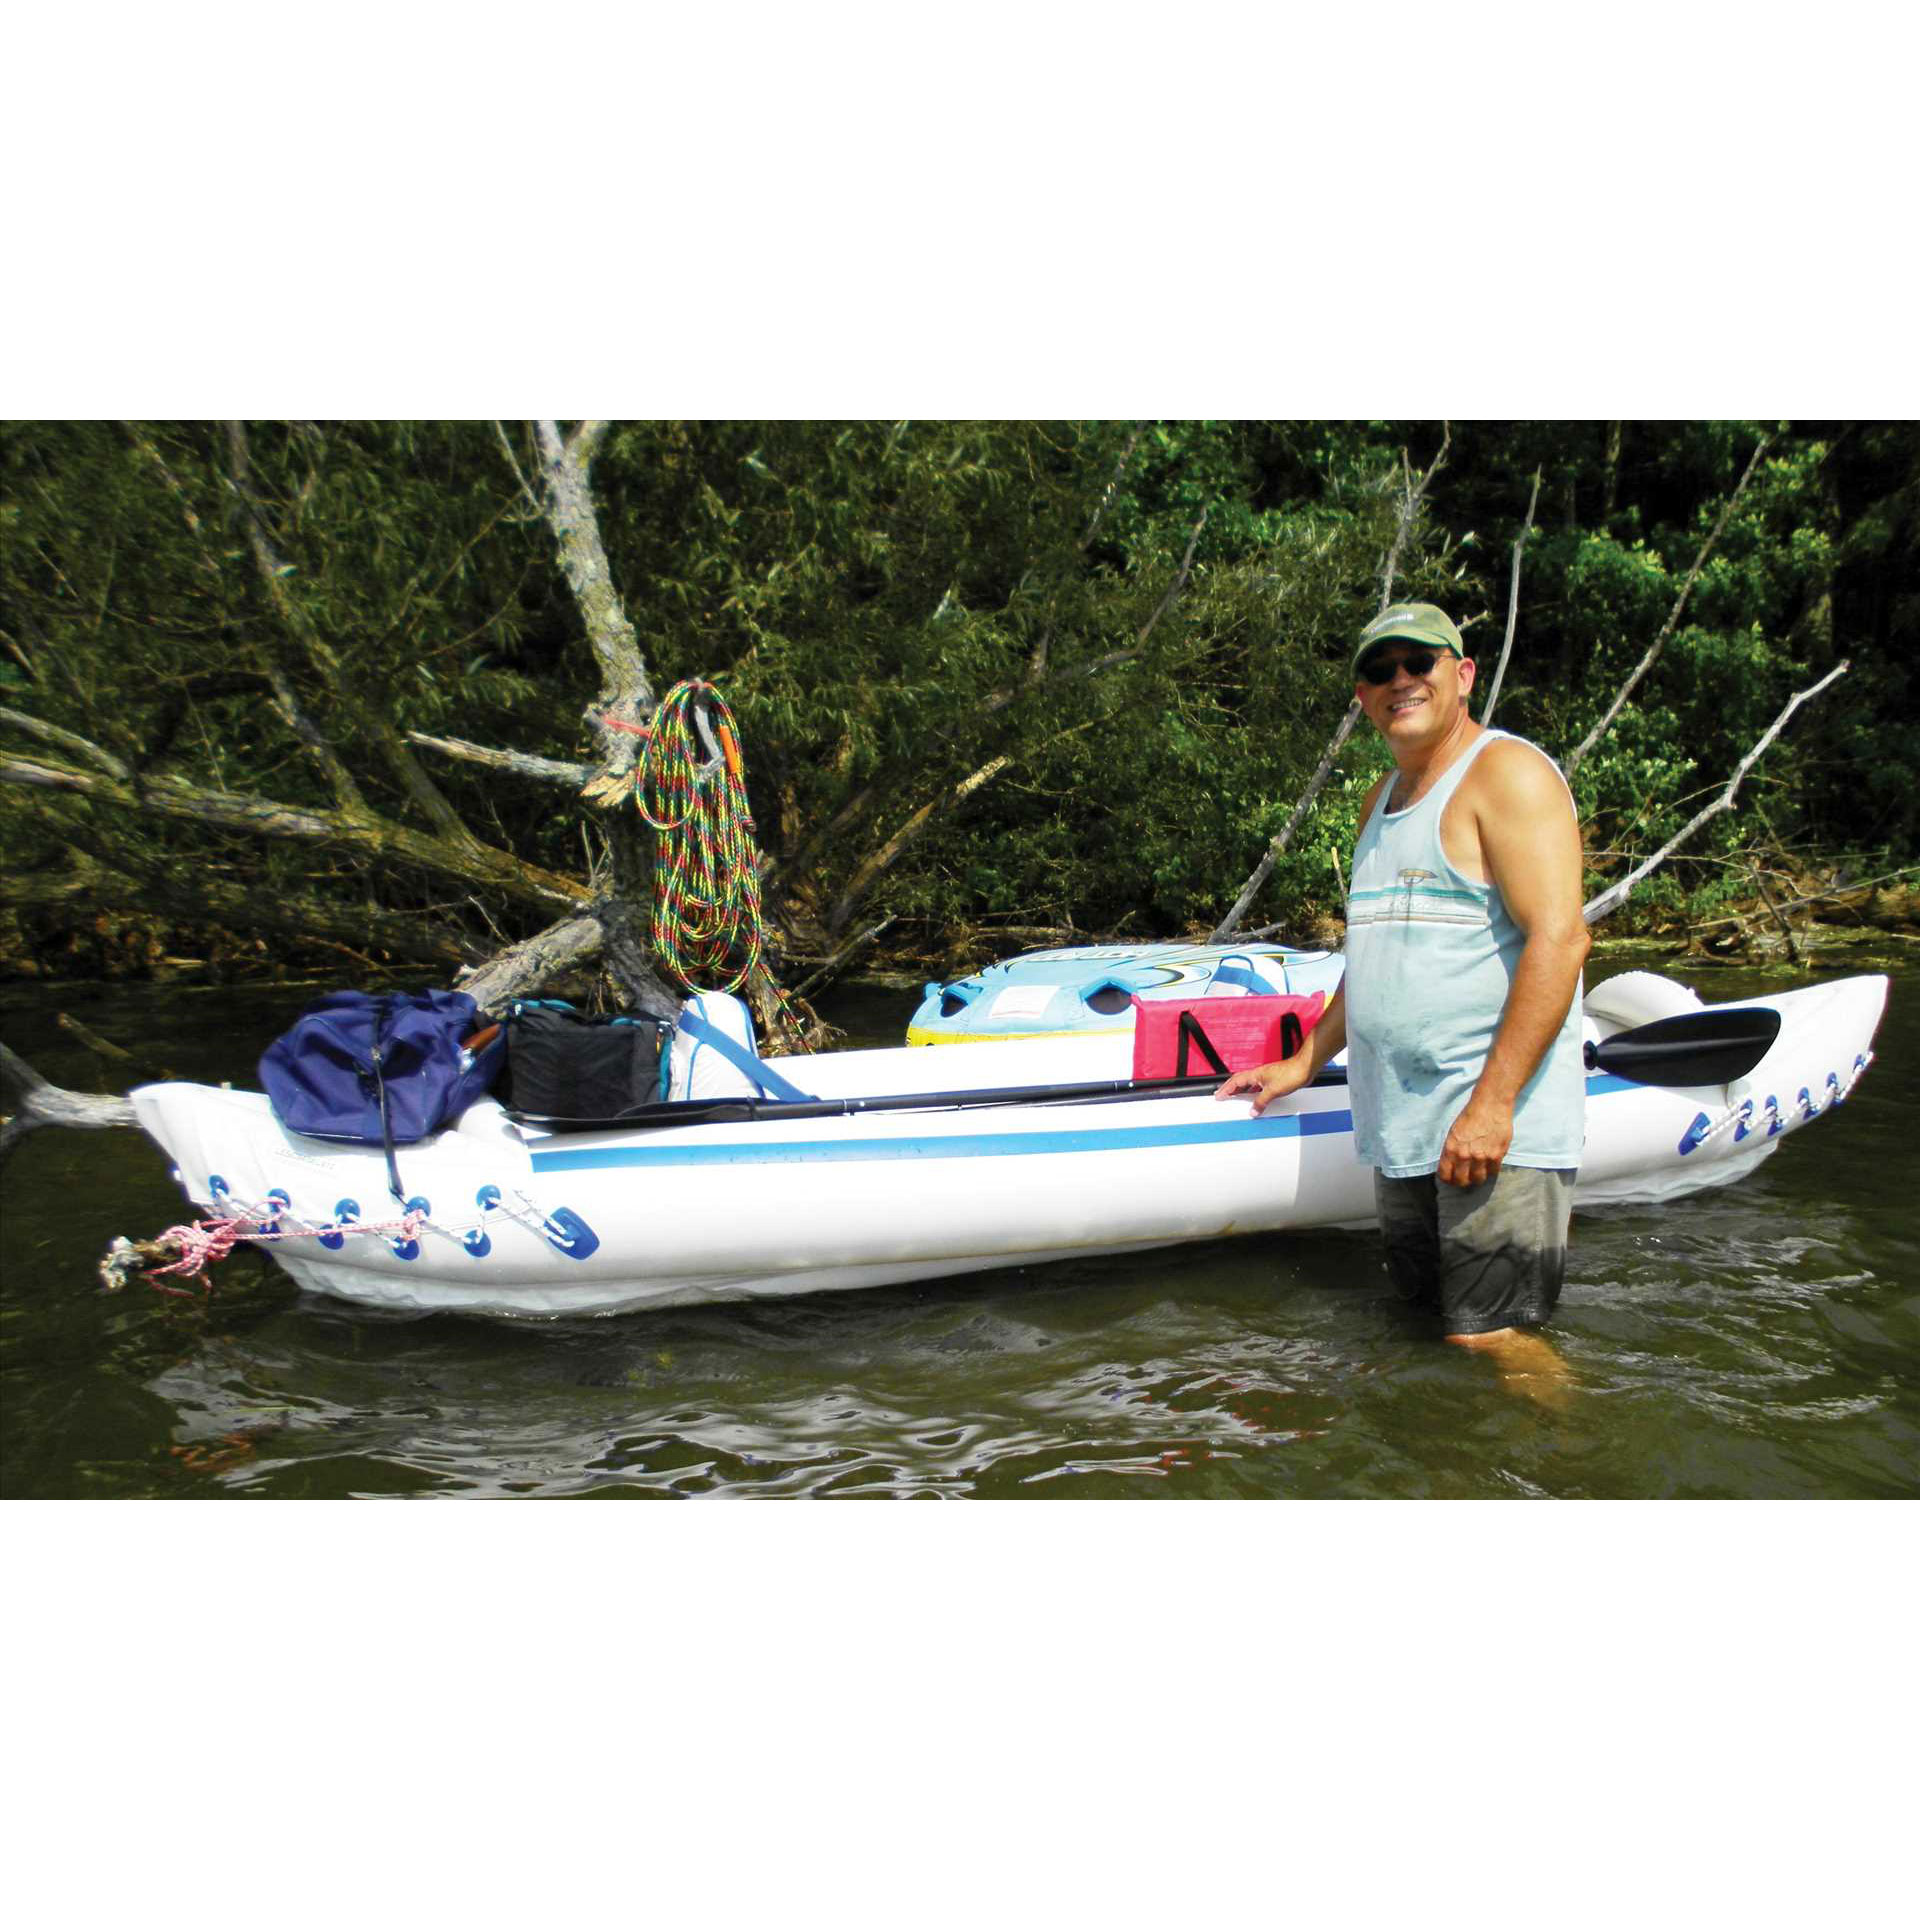 Sea eagle 370 pro 3 person blow up inflatable kayak for Blow up boat for fishing